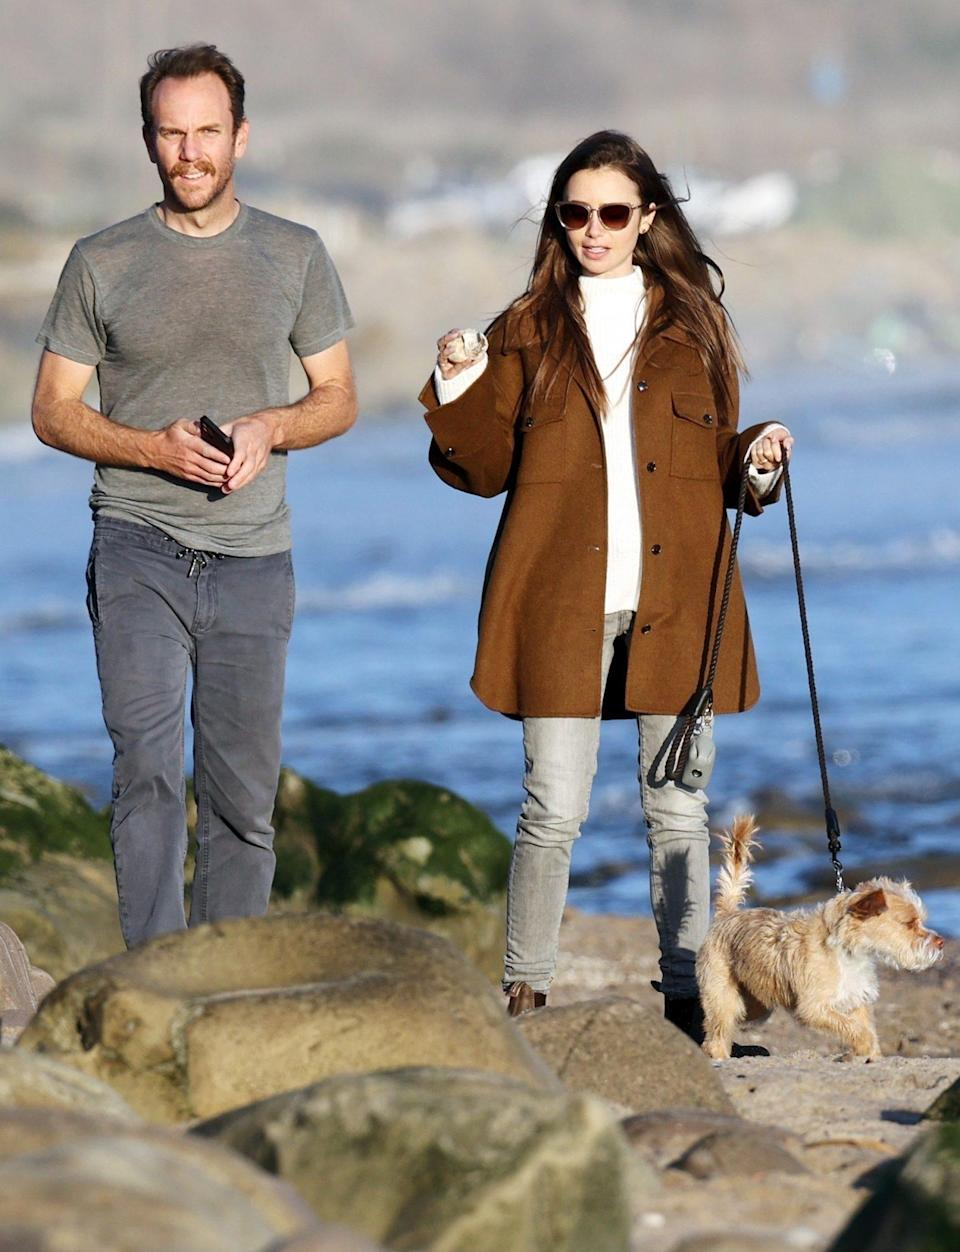 <p>Newly engaged couple Lily Collins and Charlie McDowell's new relationship is rock solid as they take their pup for a walk in Carpinteria, California on Monday. </p>